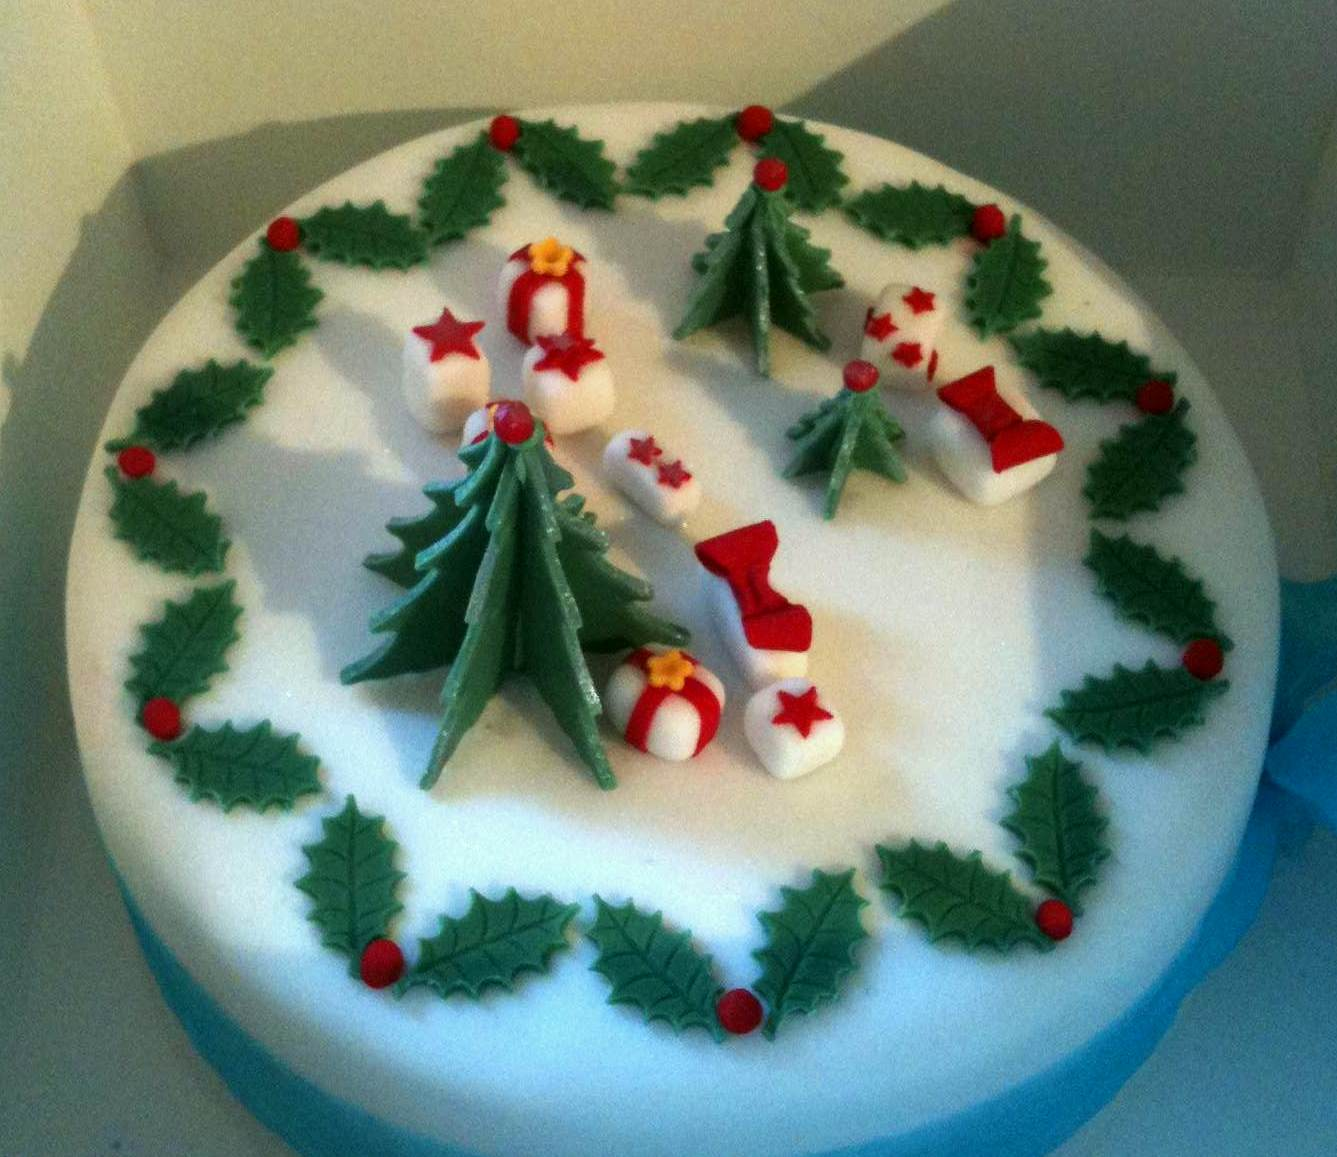 images of christmas cake - photo #22